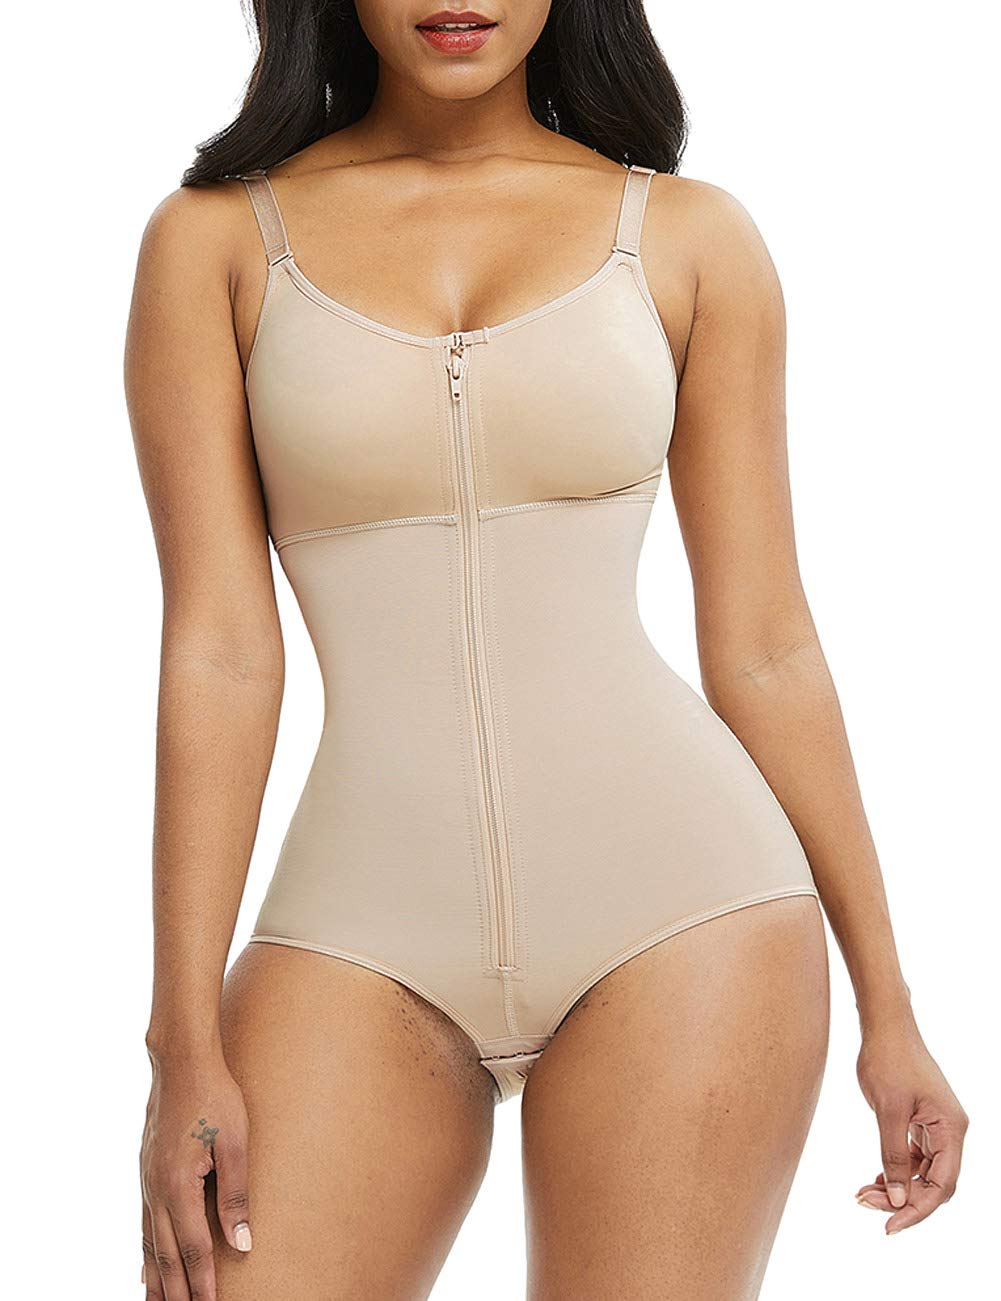 SHER Women Sexy Backless Butt Lifter Bodysuit V Neck Thong Tummy Control Shapewear Straps Seamless Slimming Body Shaper